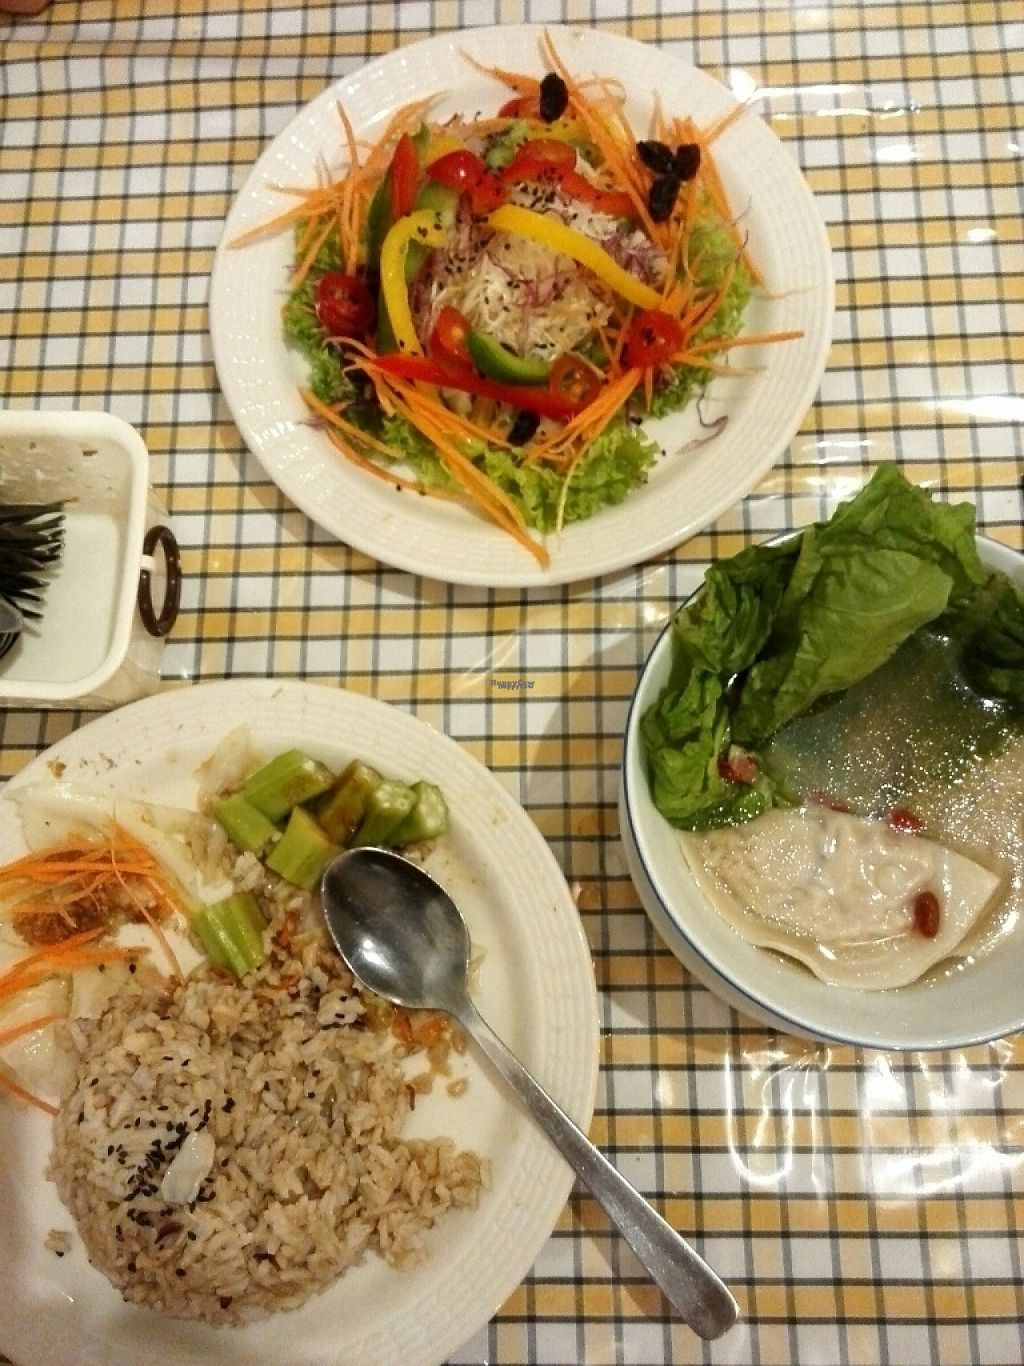 """Photo of The Leaf Healthy House  by <a href=""""/members/profile/shurup"""">shurup</a> <br/>Salad and dumpling set <br/> March 9, 2017  - <a href='/contact/abuse/image/27692/234538'>Report</a>"""